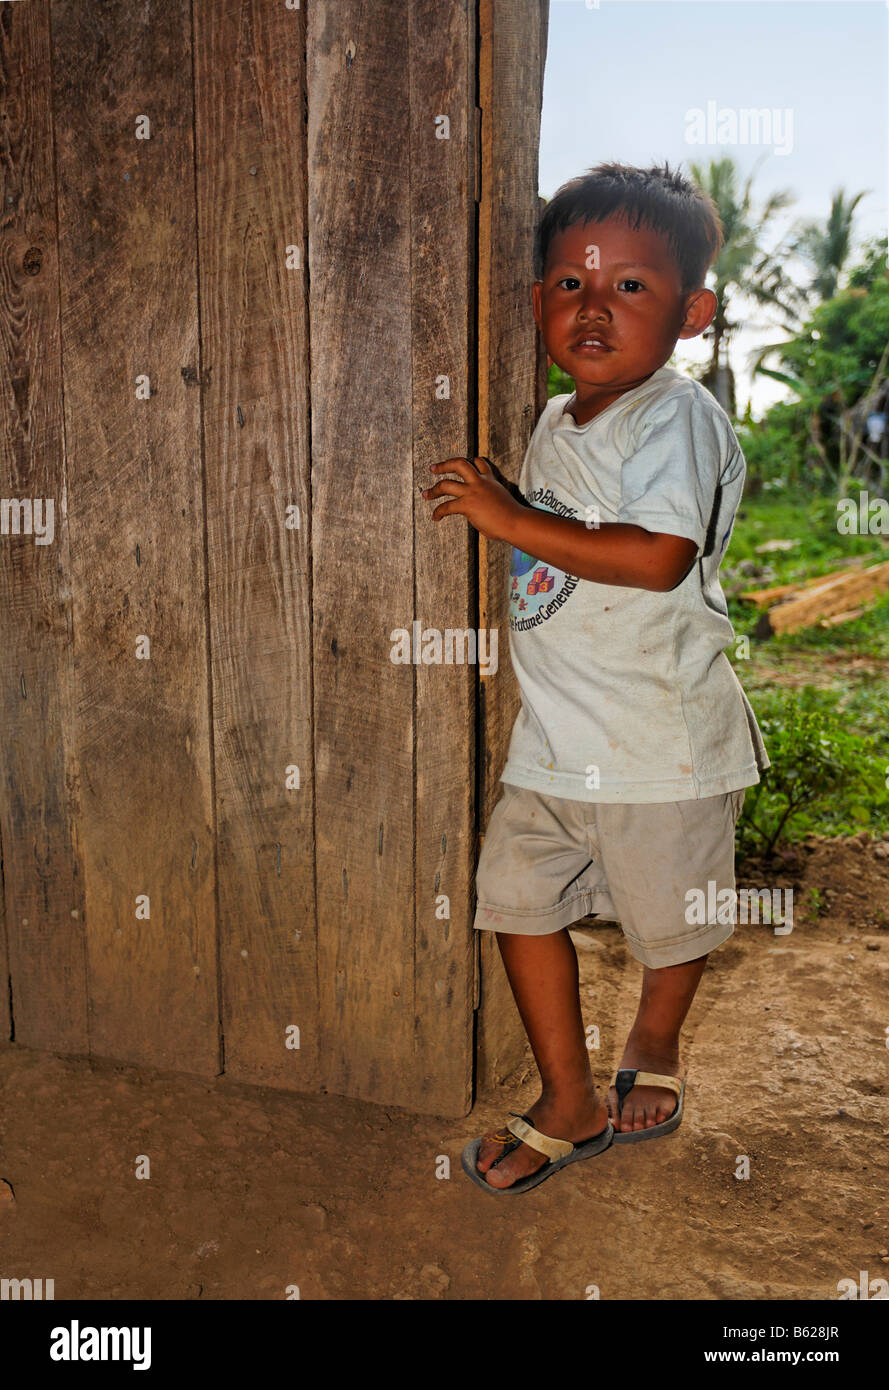 Small, local boy standing in a wooden doorway, Punta Gorda, Belize, Central America Stock Photo